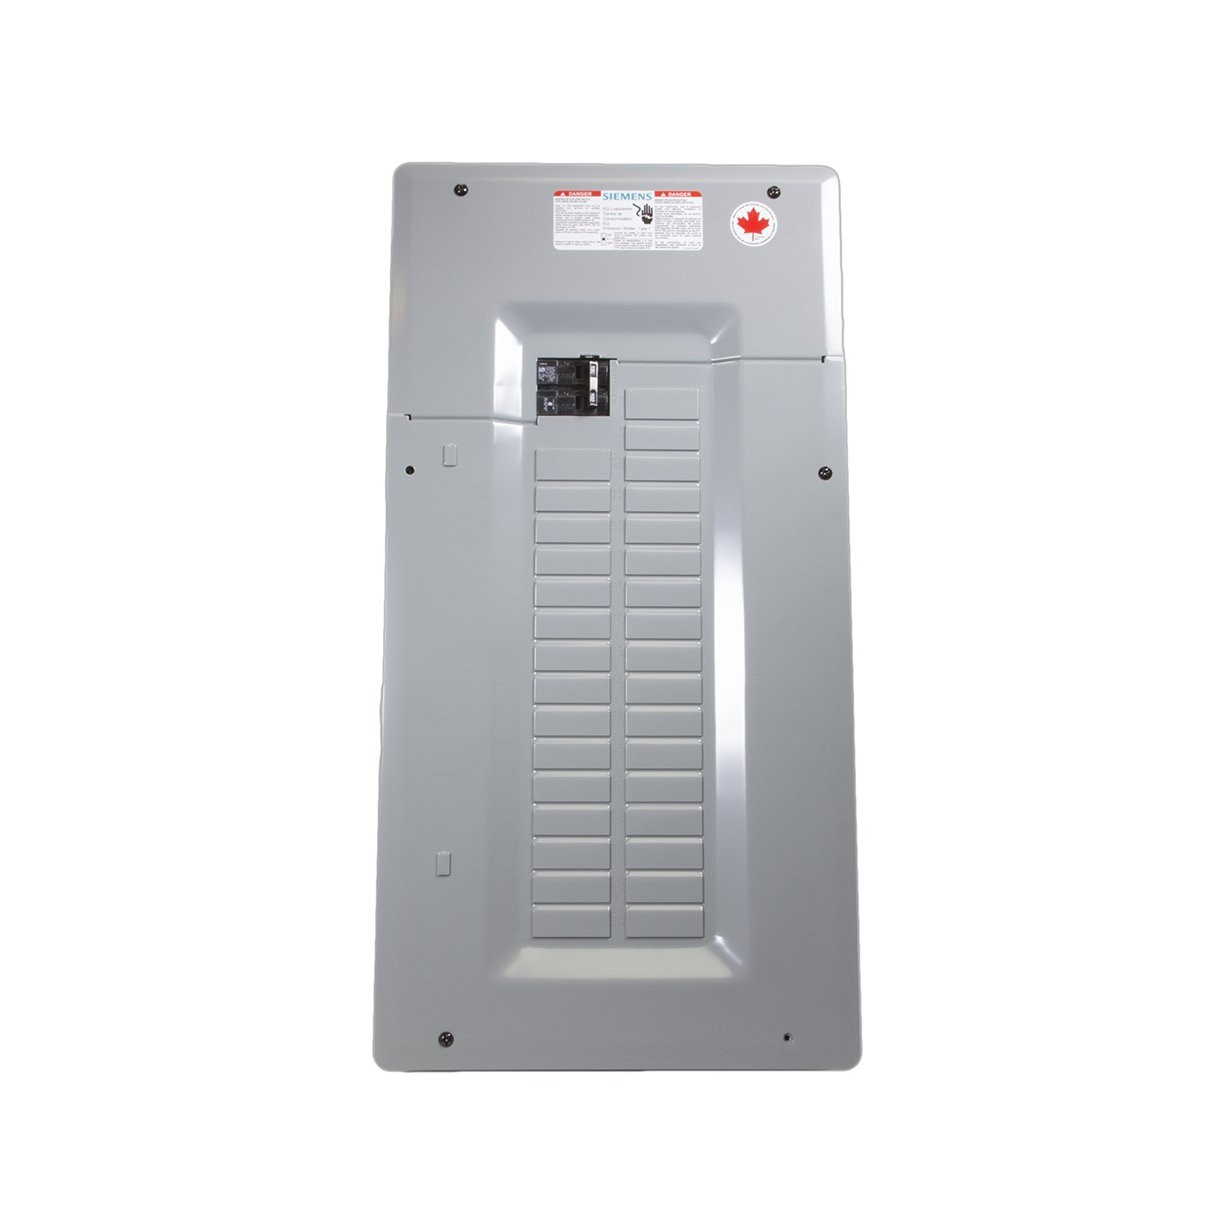 Siemens SEQ32100SM - SEQ Single Phase Main Breaker Loadcentres - 100A - 120/240V - 32/64 Circuits - 4-2/0 Lug Data - Combination Flush/Surface mounted - Without door